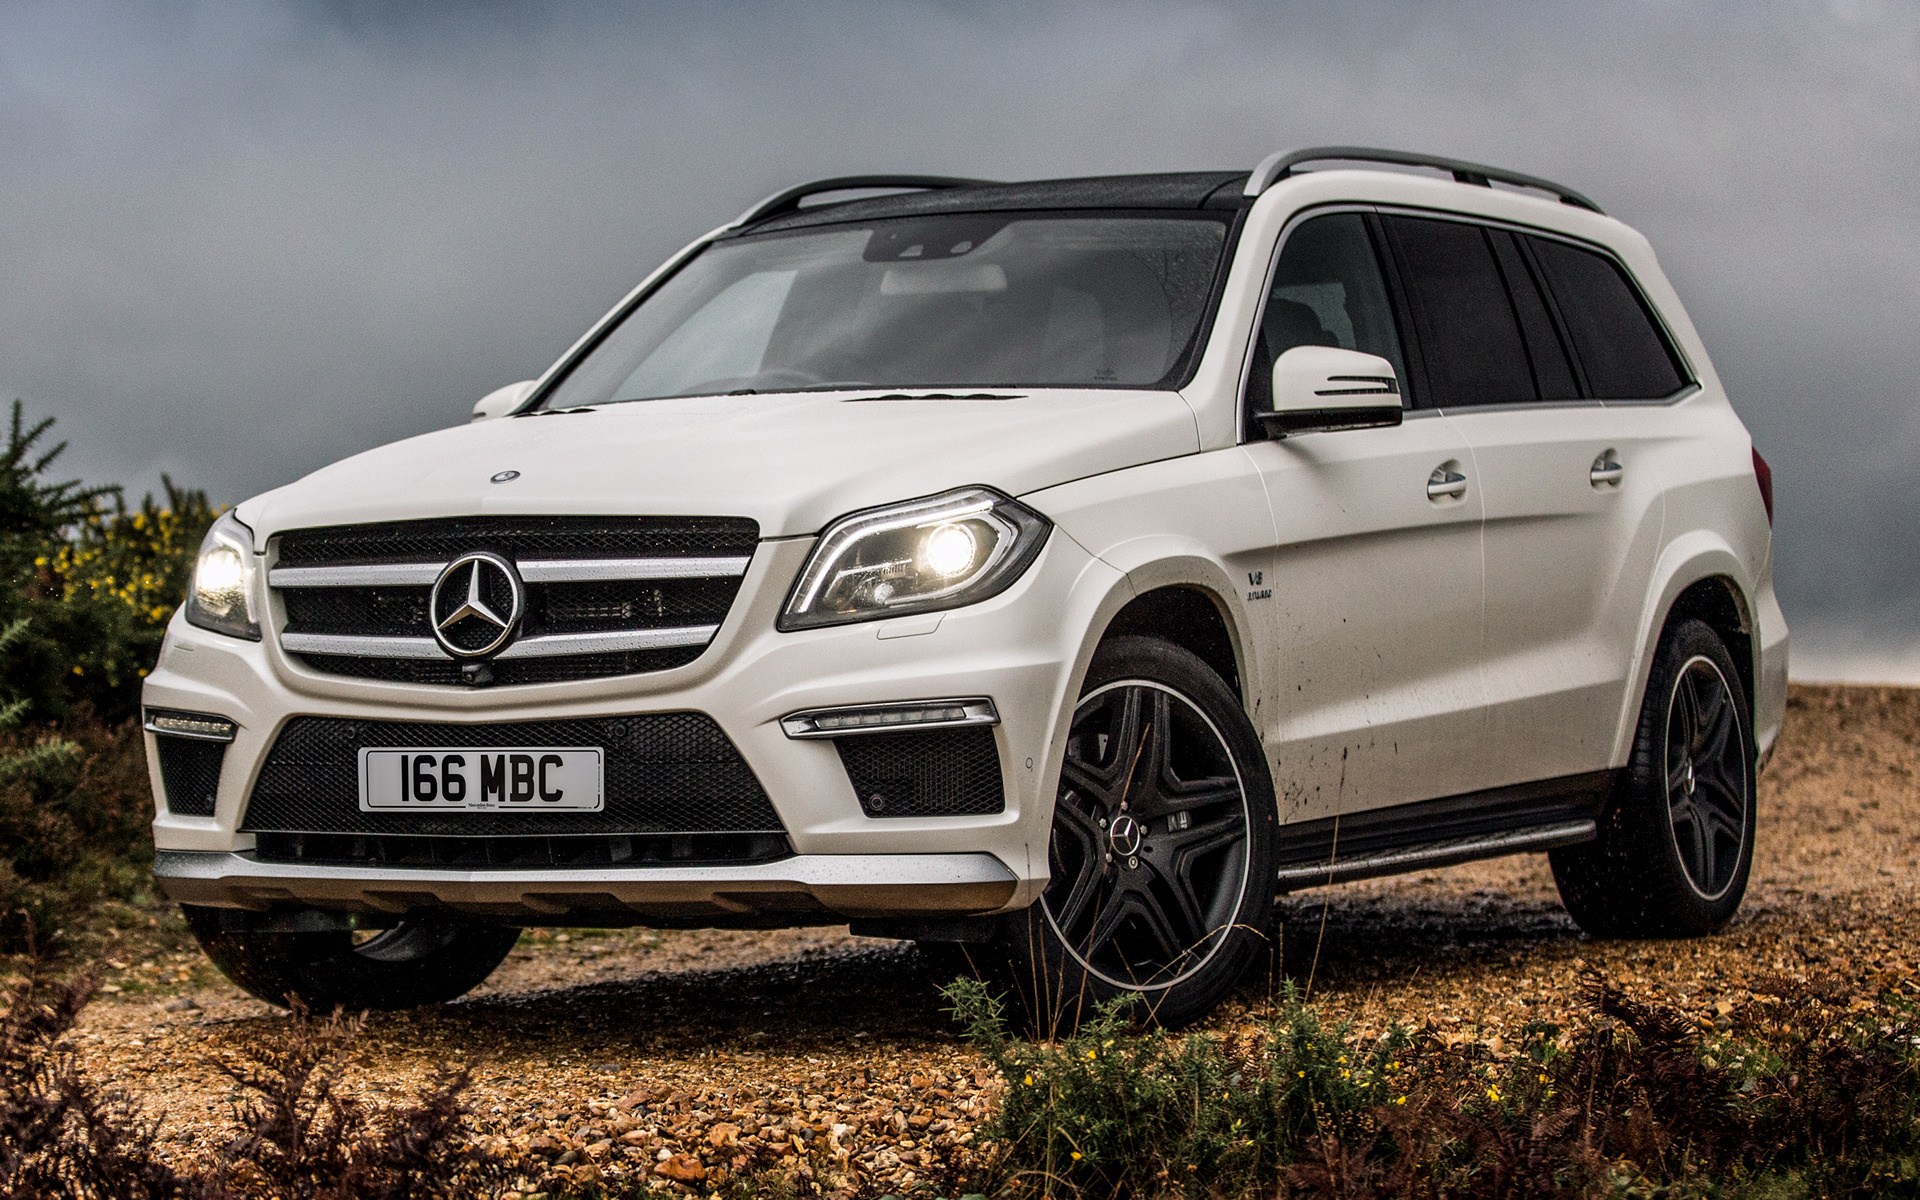 2013 Mercedes Benz Gl 63 Amg Uk Wallpapers And Hd